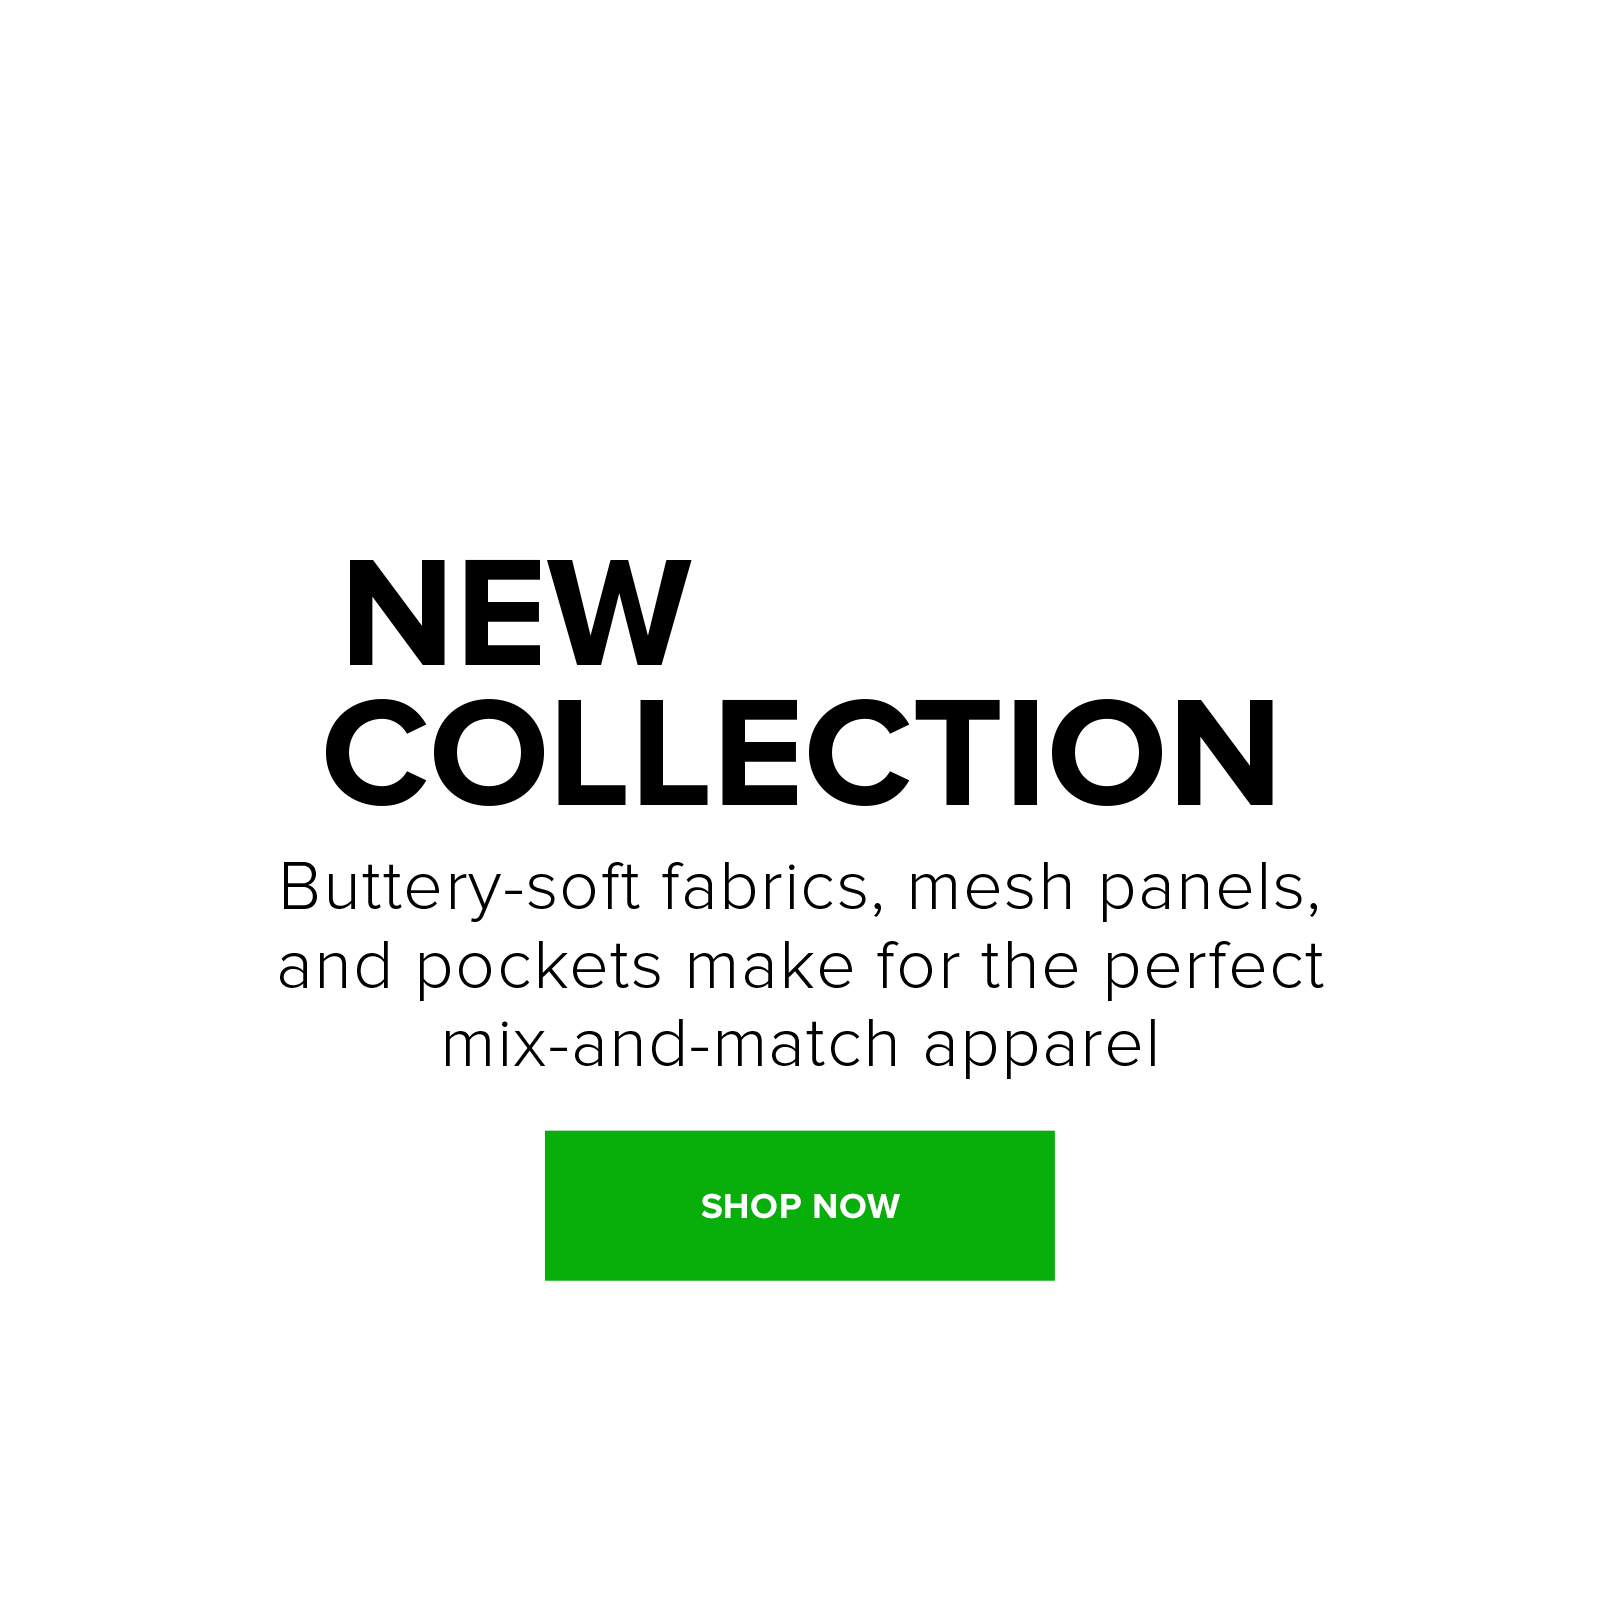 Shop the new apparel Bailey Collection